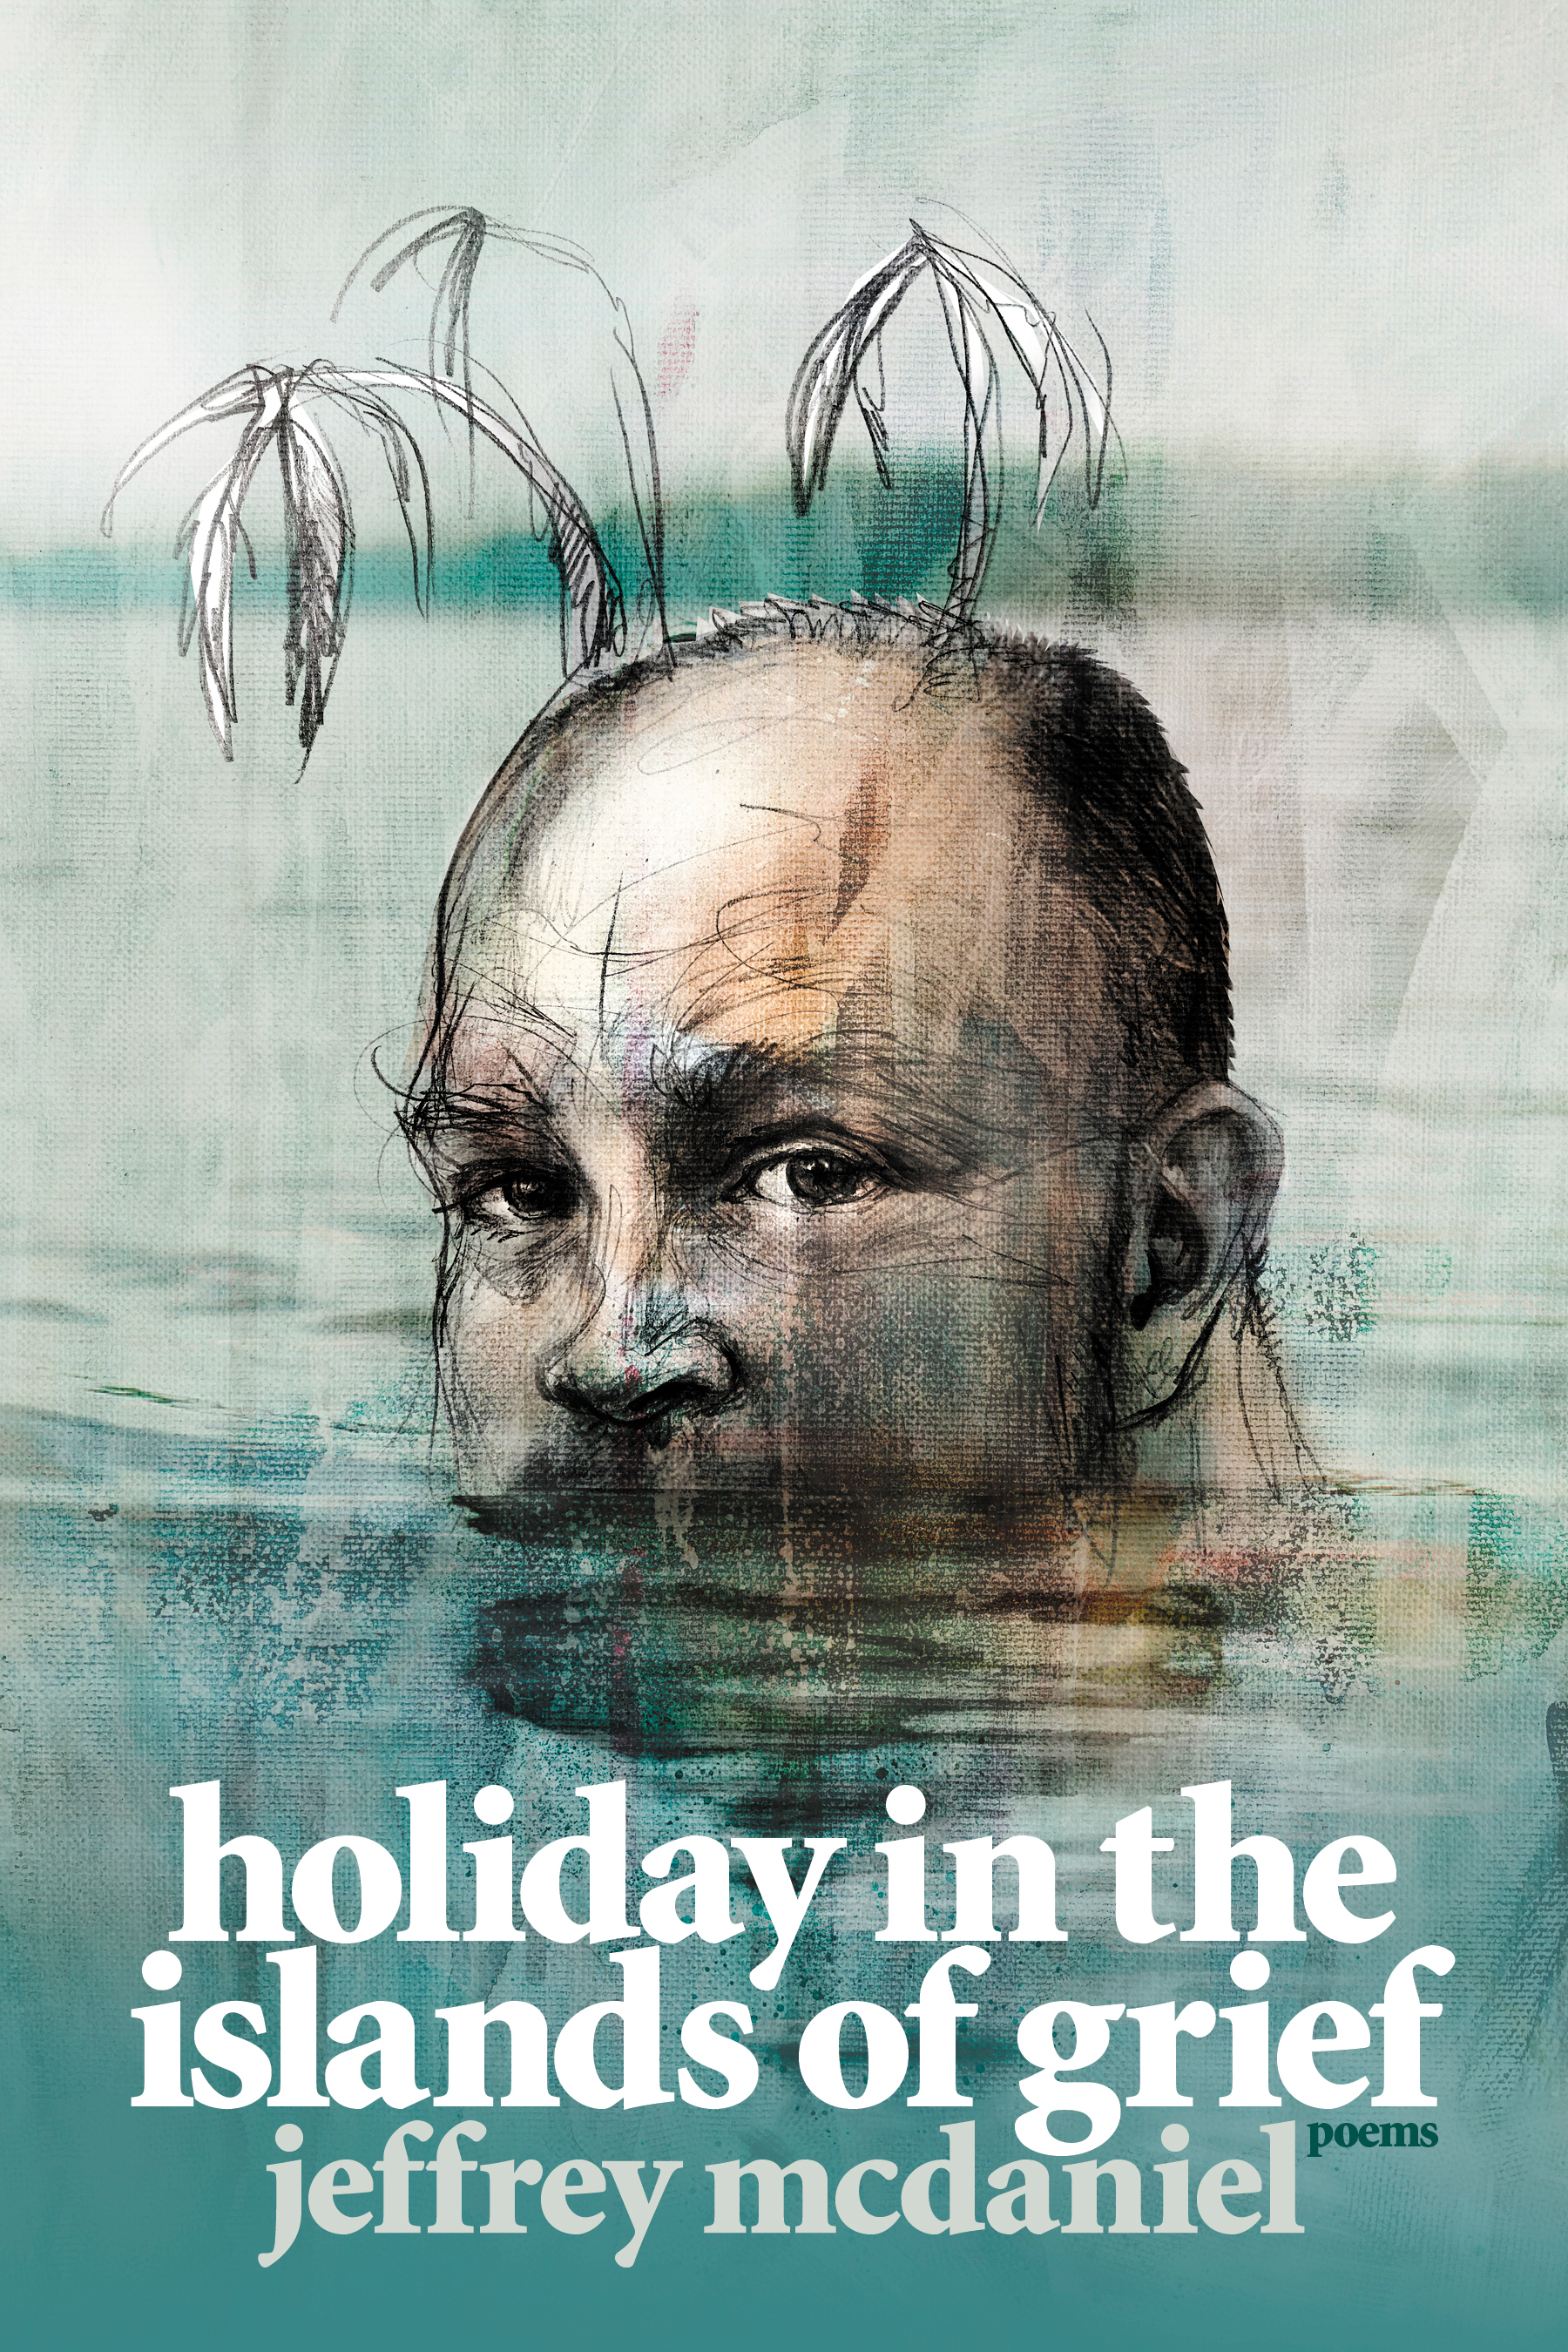 Holiday in the Islands of Grief: Poems by Jeffrey McDaniel